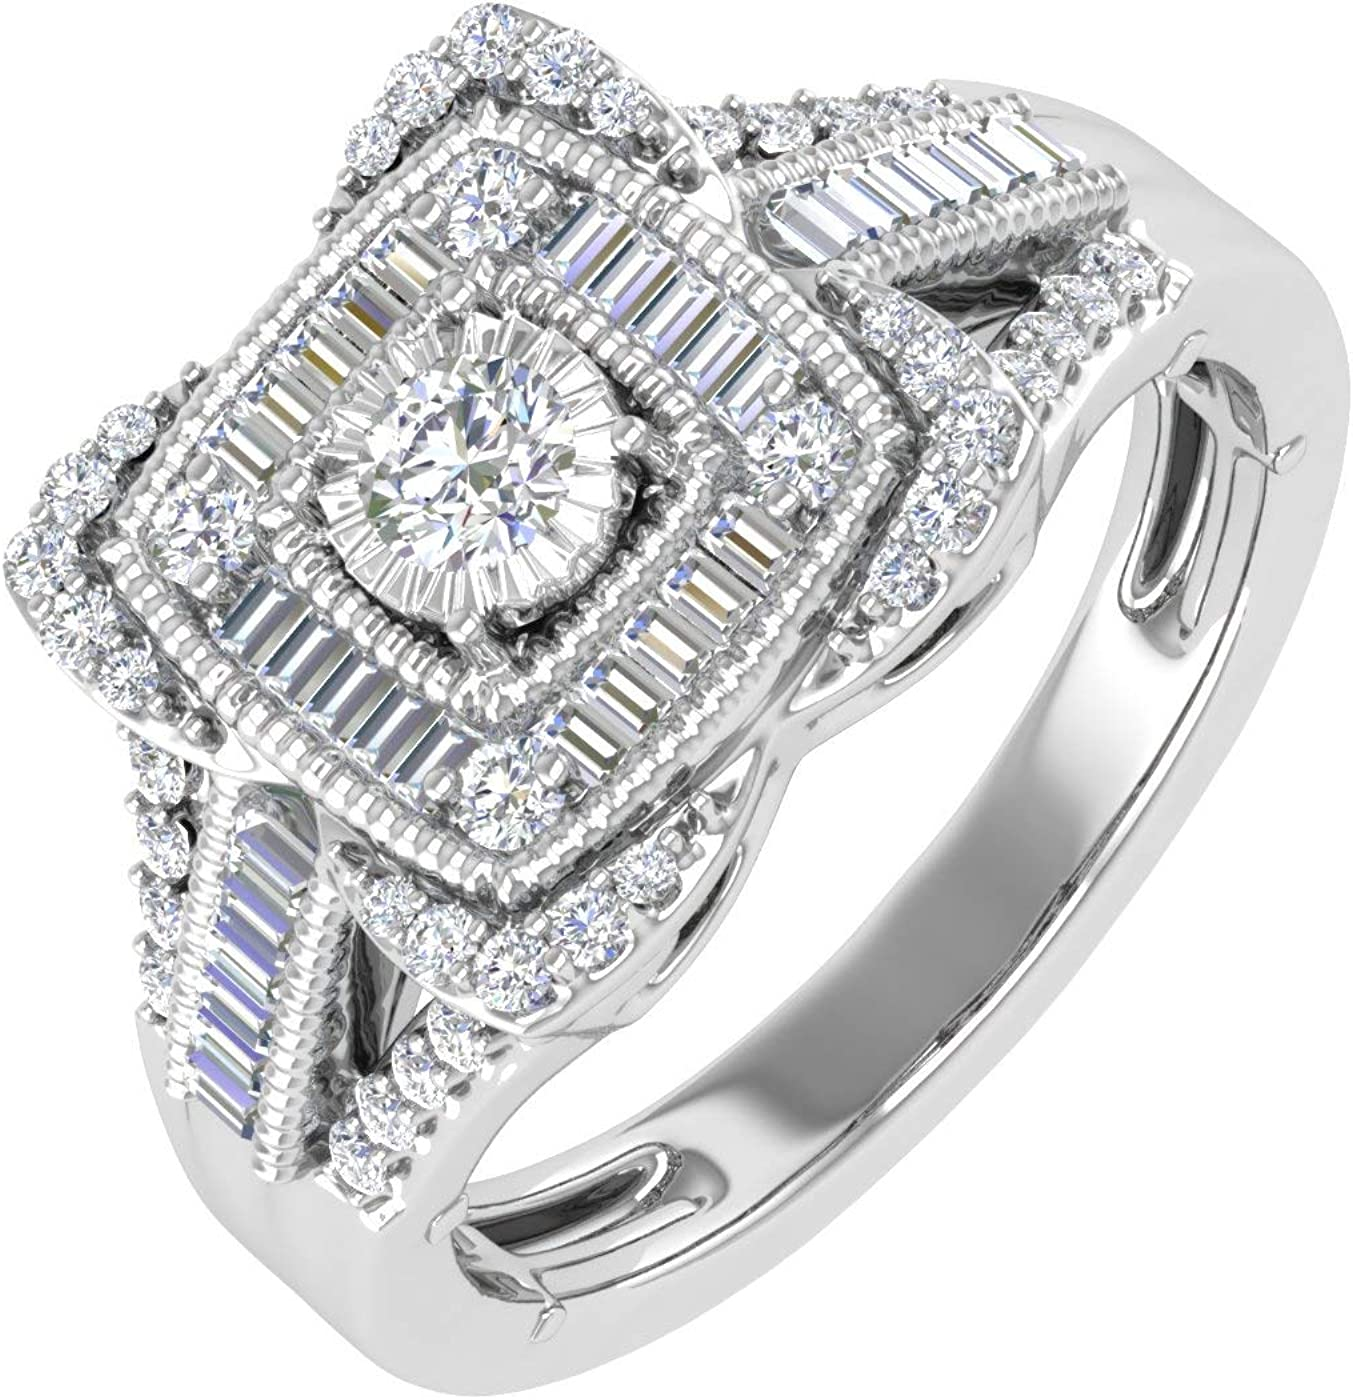 1 2 Raleigh Mall Carat Round Baguette Shape Cushion Shaped Diamond Halo Quality inspection Rin